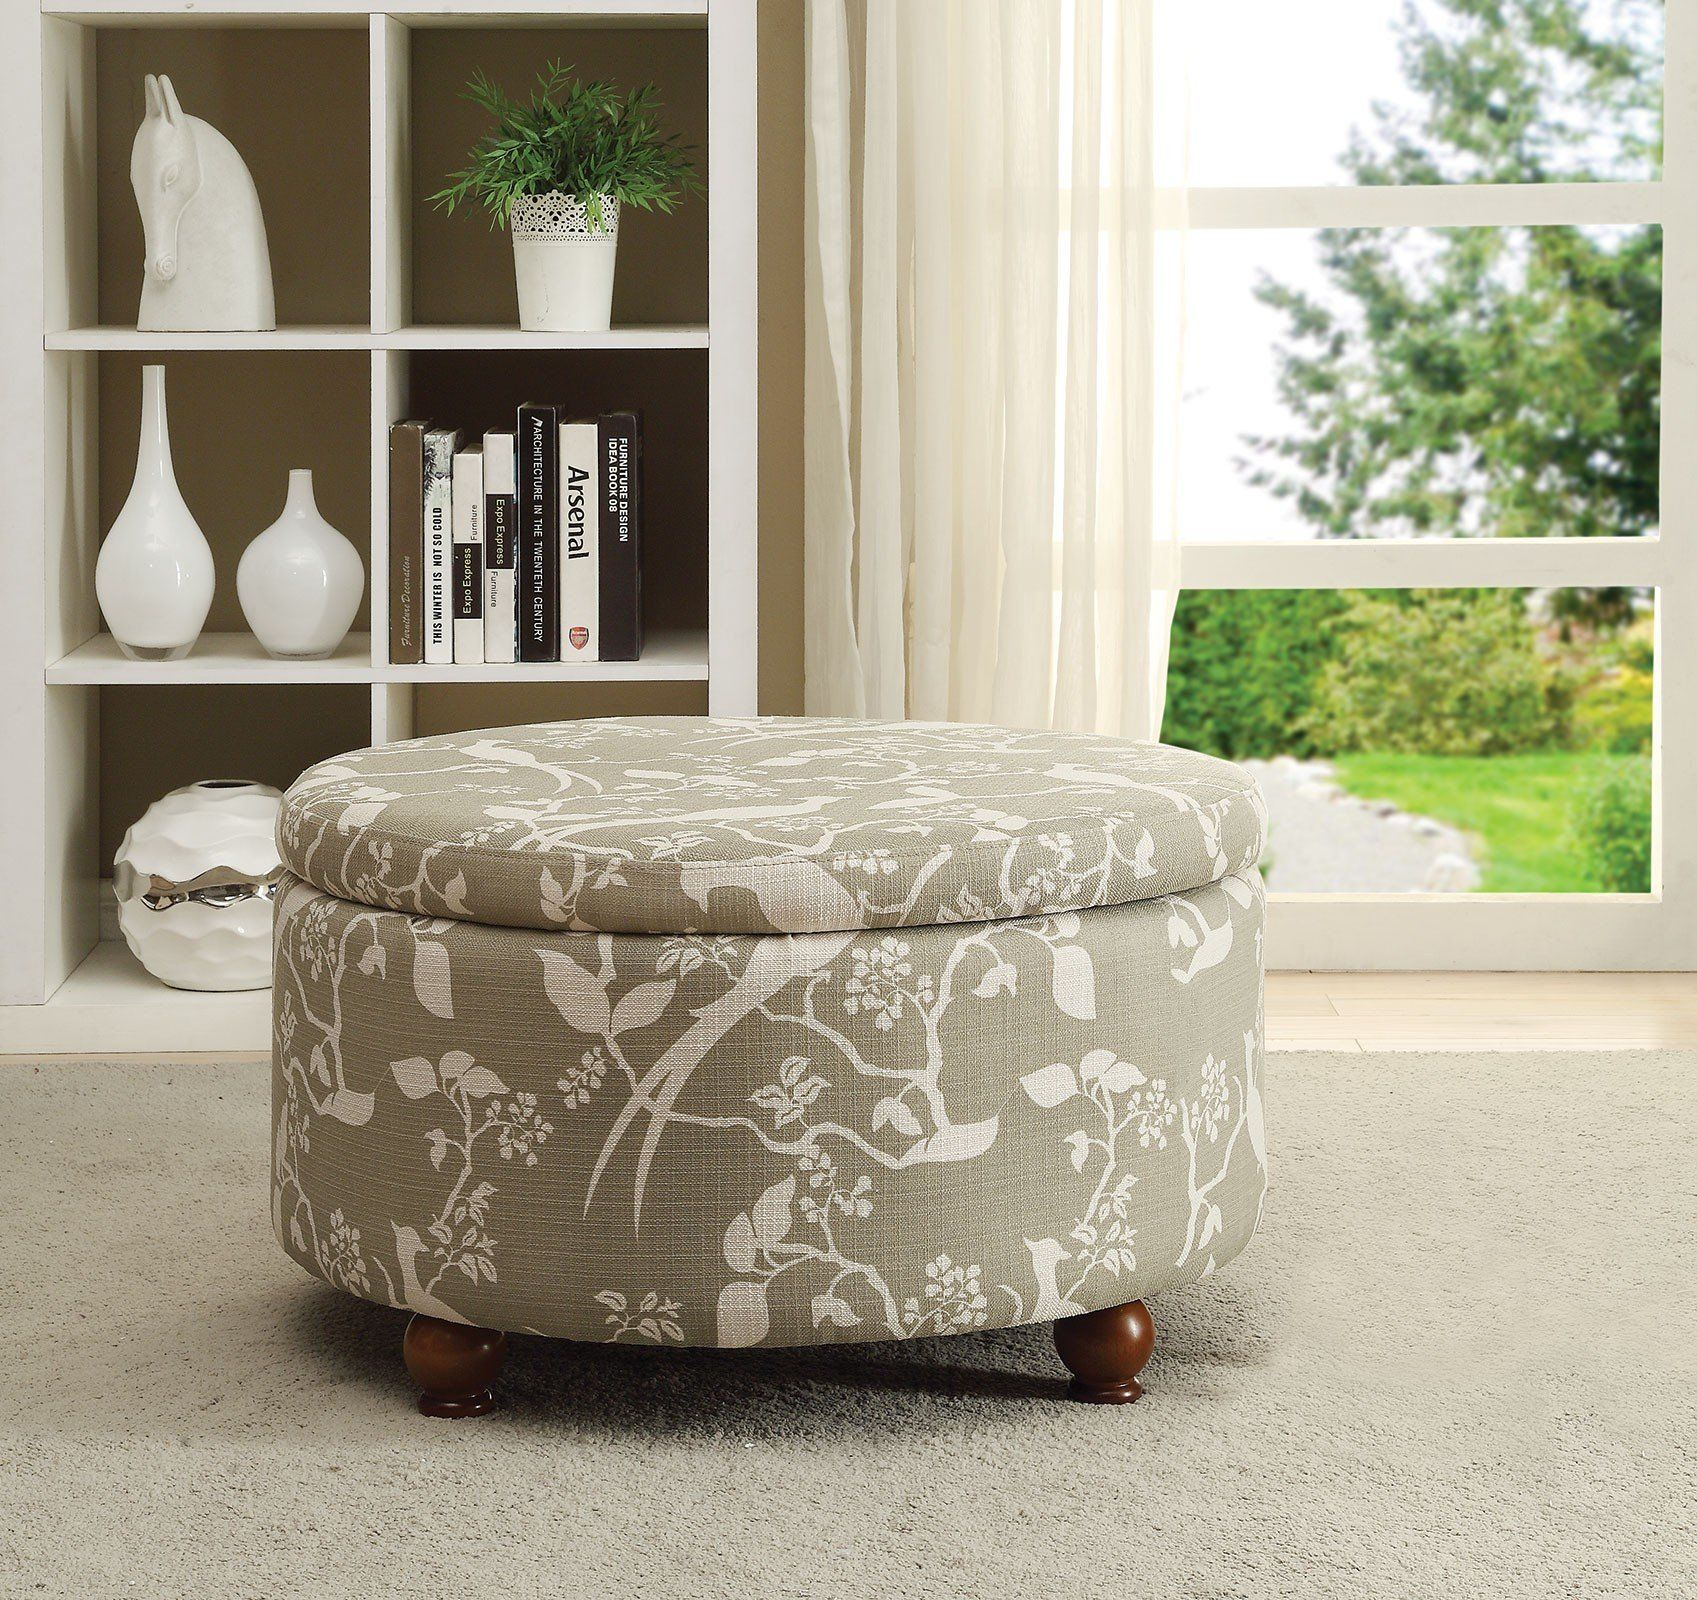 Best Of Coffee Table with Ottoman Stools